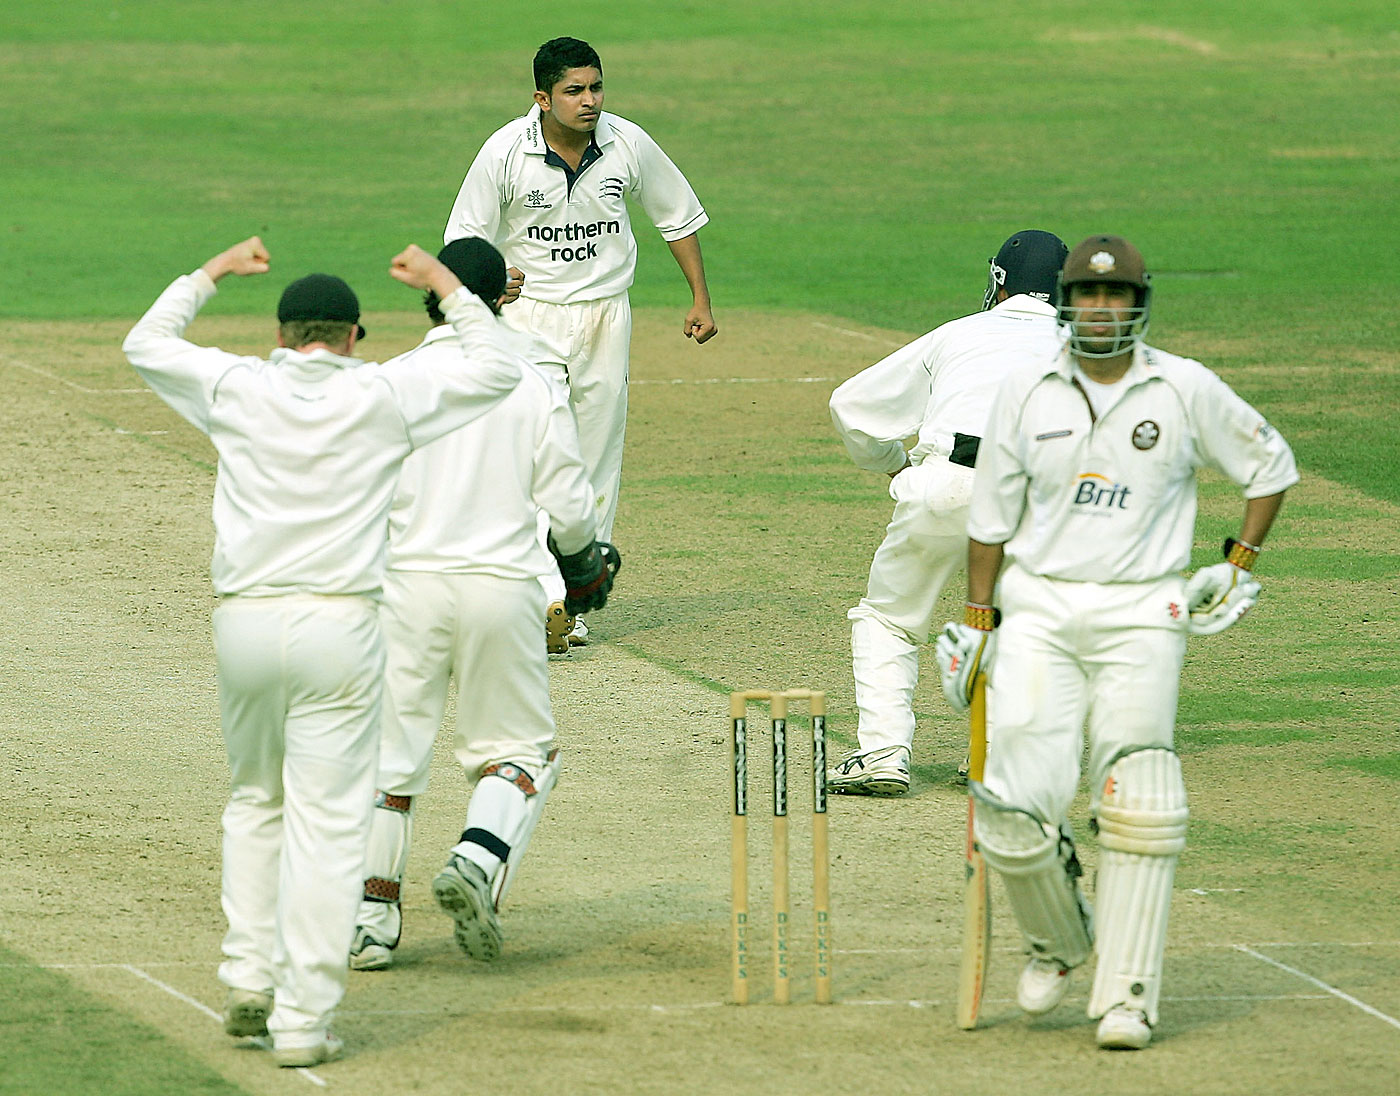 Yogesh Golwalkar, seen here taking a wicket for Middlesex in 2005, was picked by Kings XI on the strength of videos he made of himself bowling